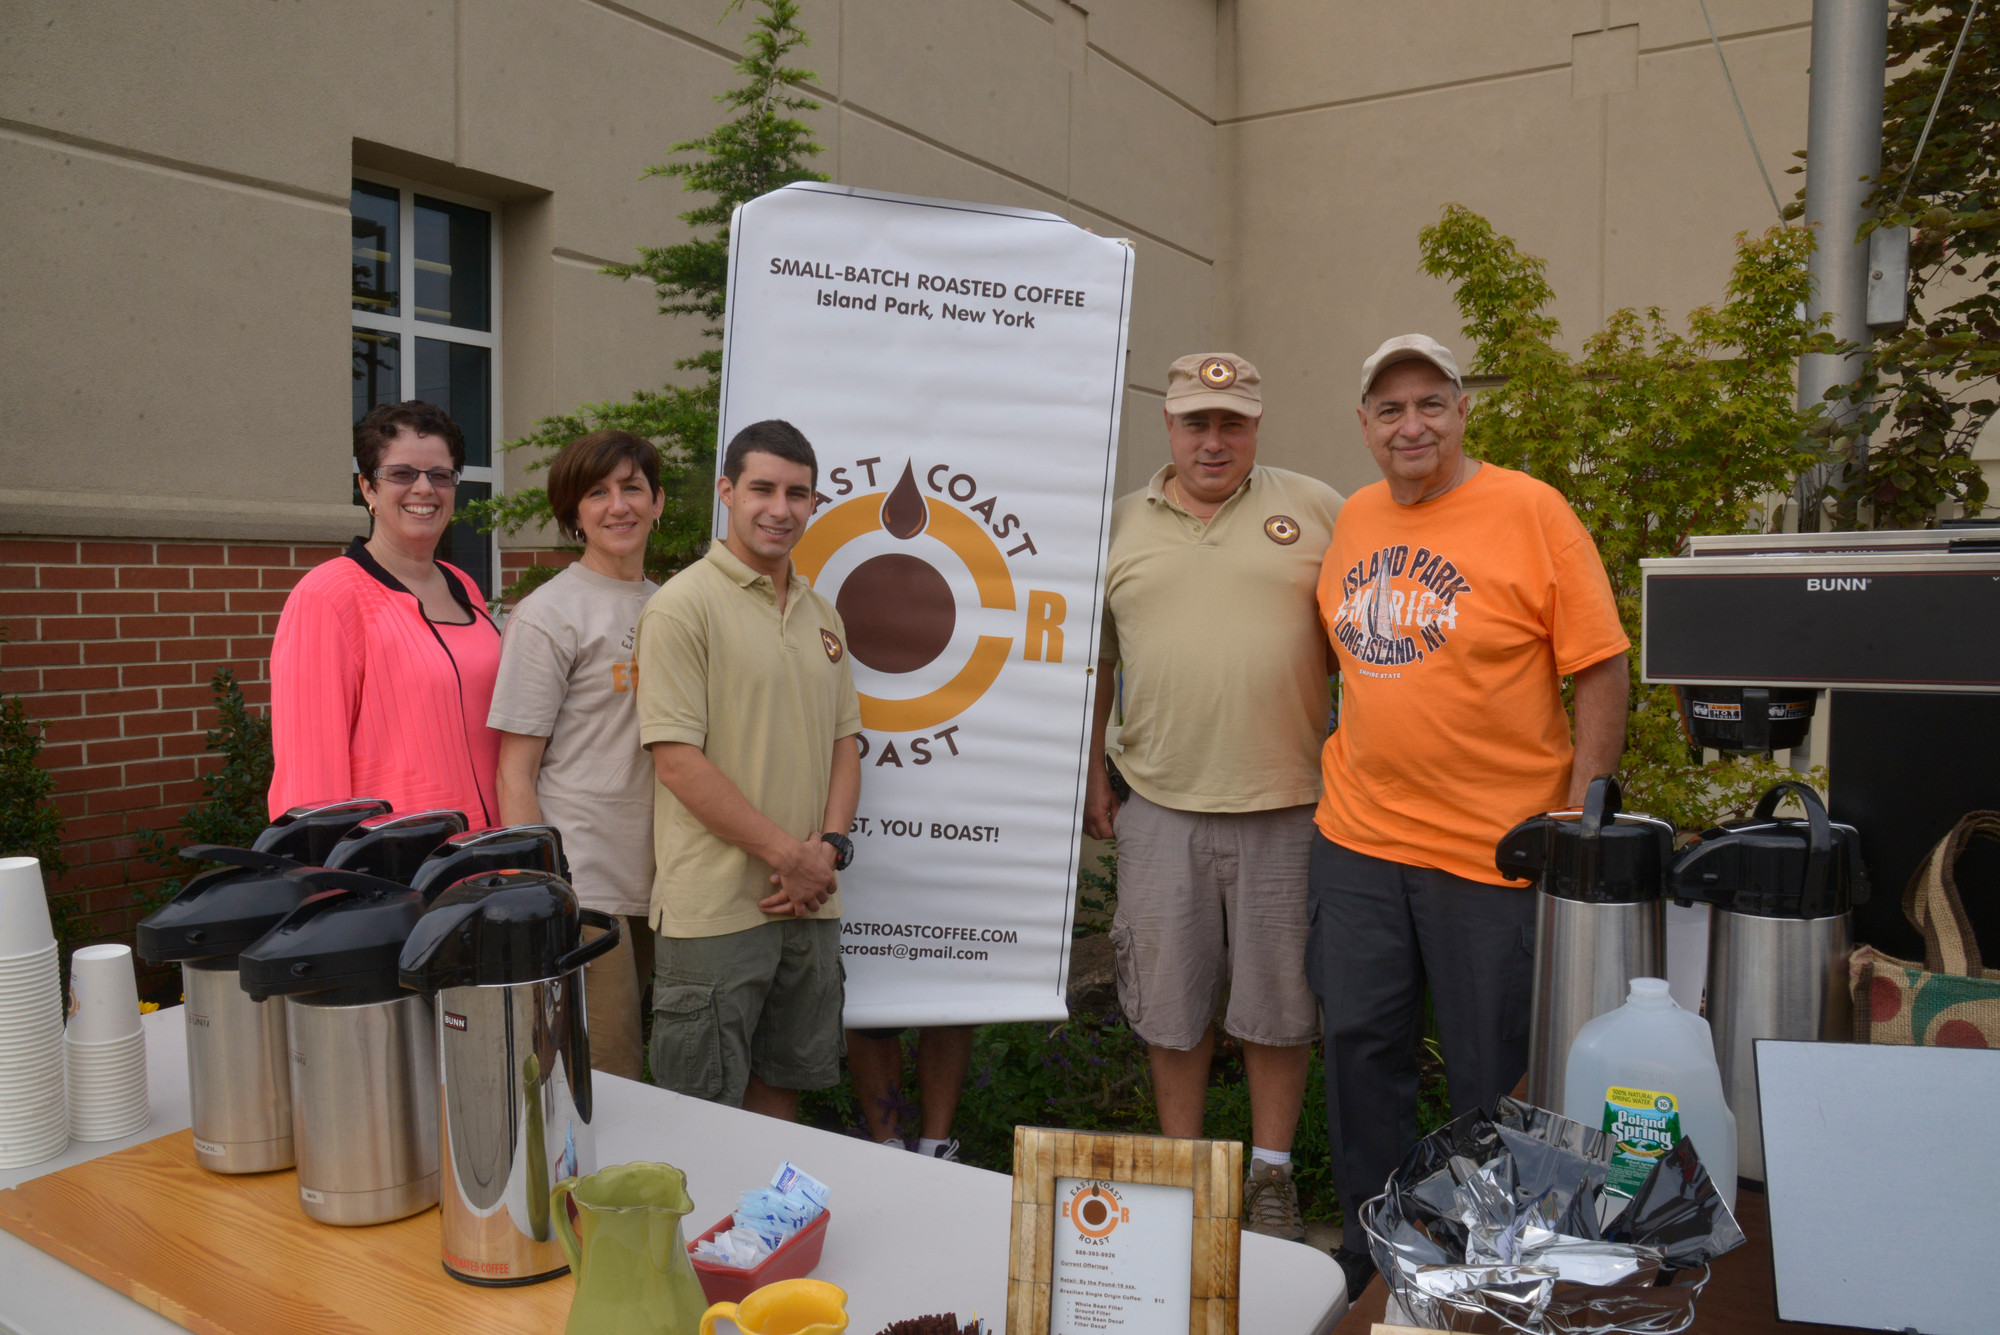 Library director Jessica Koenig (left), Richard Maryanne and John Comuniello  from East Coast Coffee, the company that donated coffee for the event, with library trustee Joe Ponte at the community welcome ceremony last week.